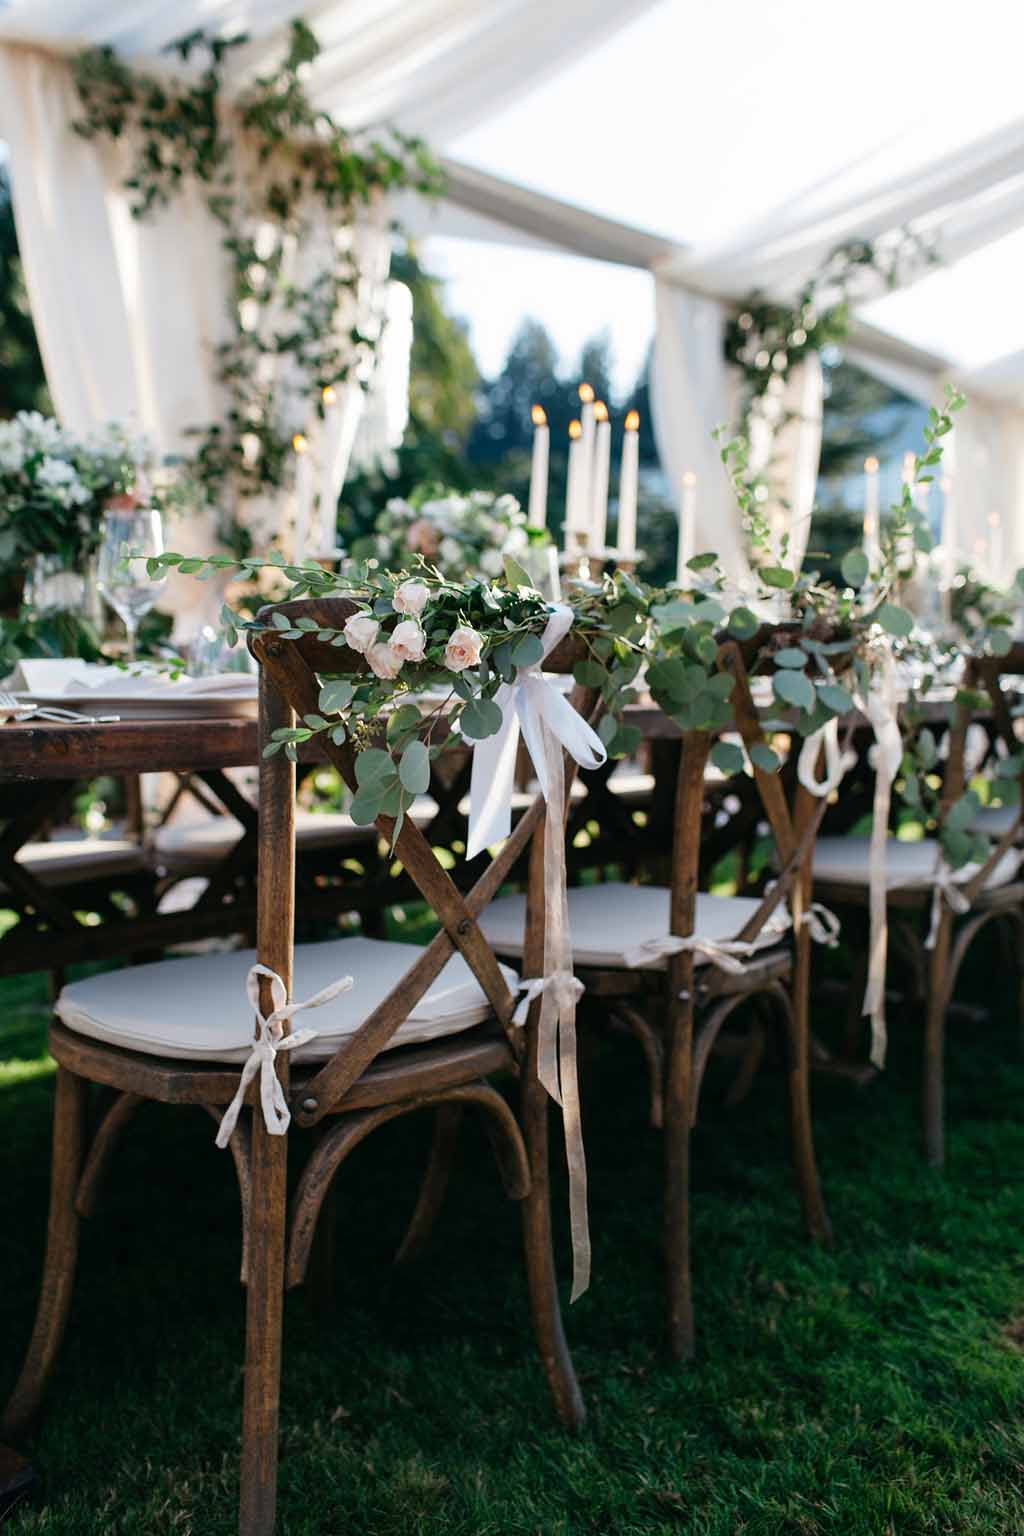 Bride and groom chair decorations with greenery and flowers - Elegant Seattle Garden Wedding by Flora Nova Design Seattle